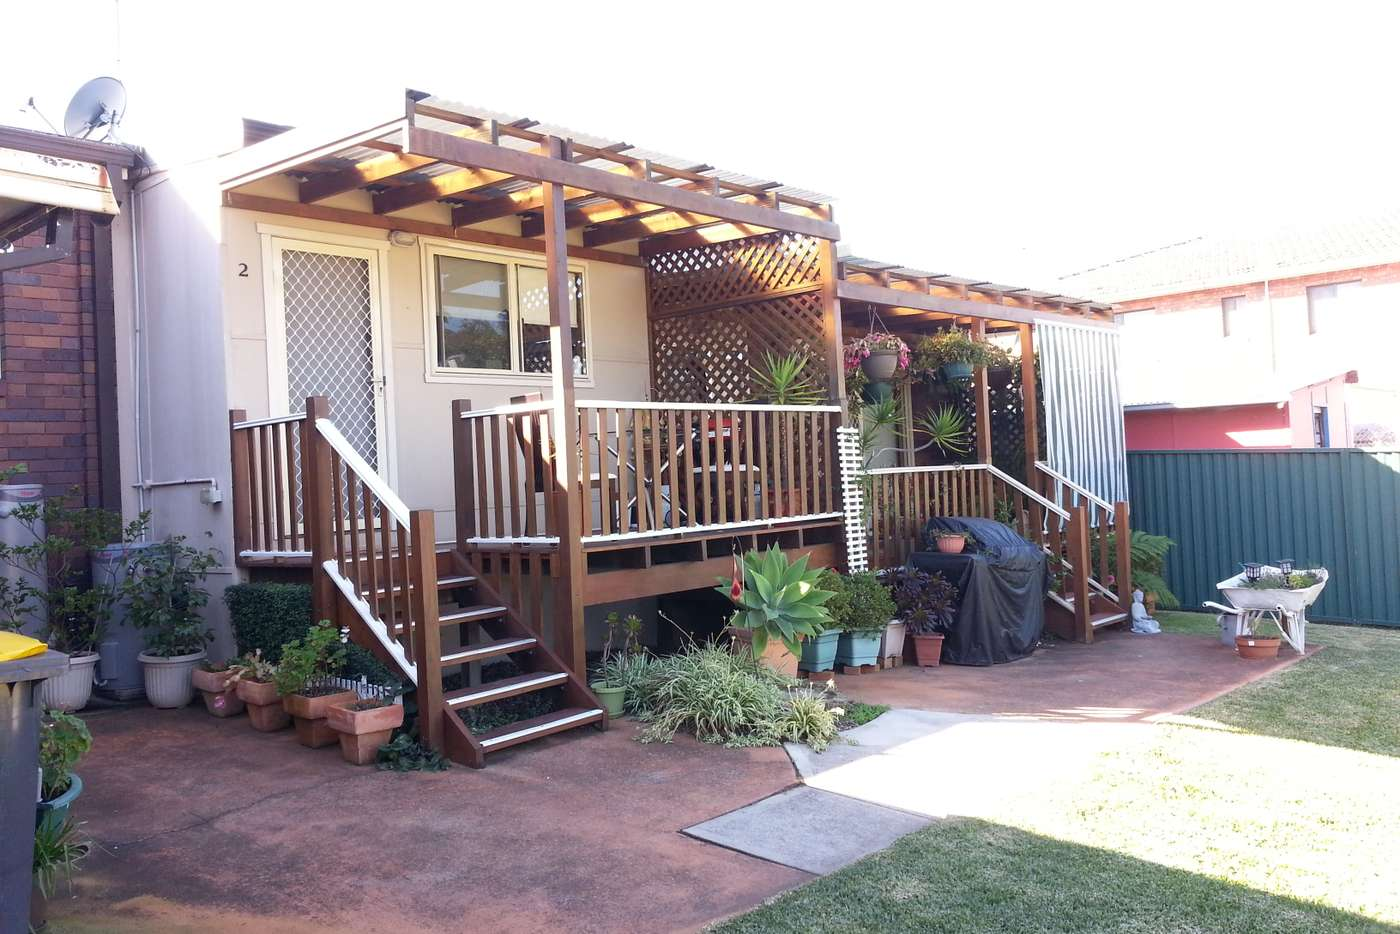 Main view of Homely flat listing, 2/29 Lymington Street, Bexley NSW 2207